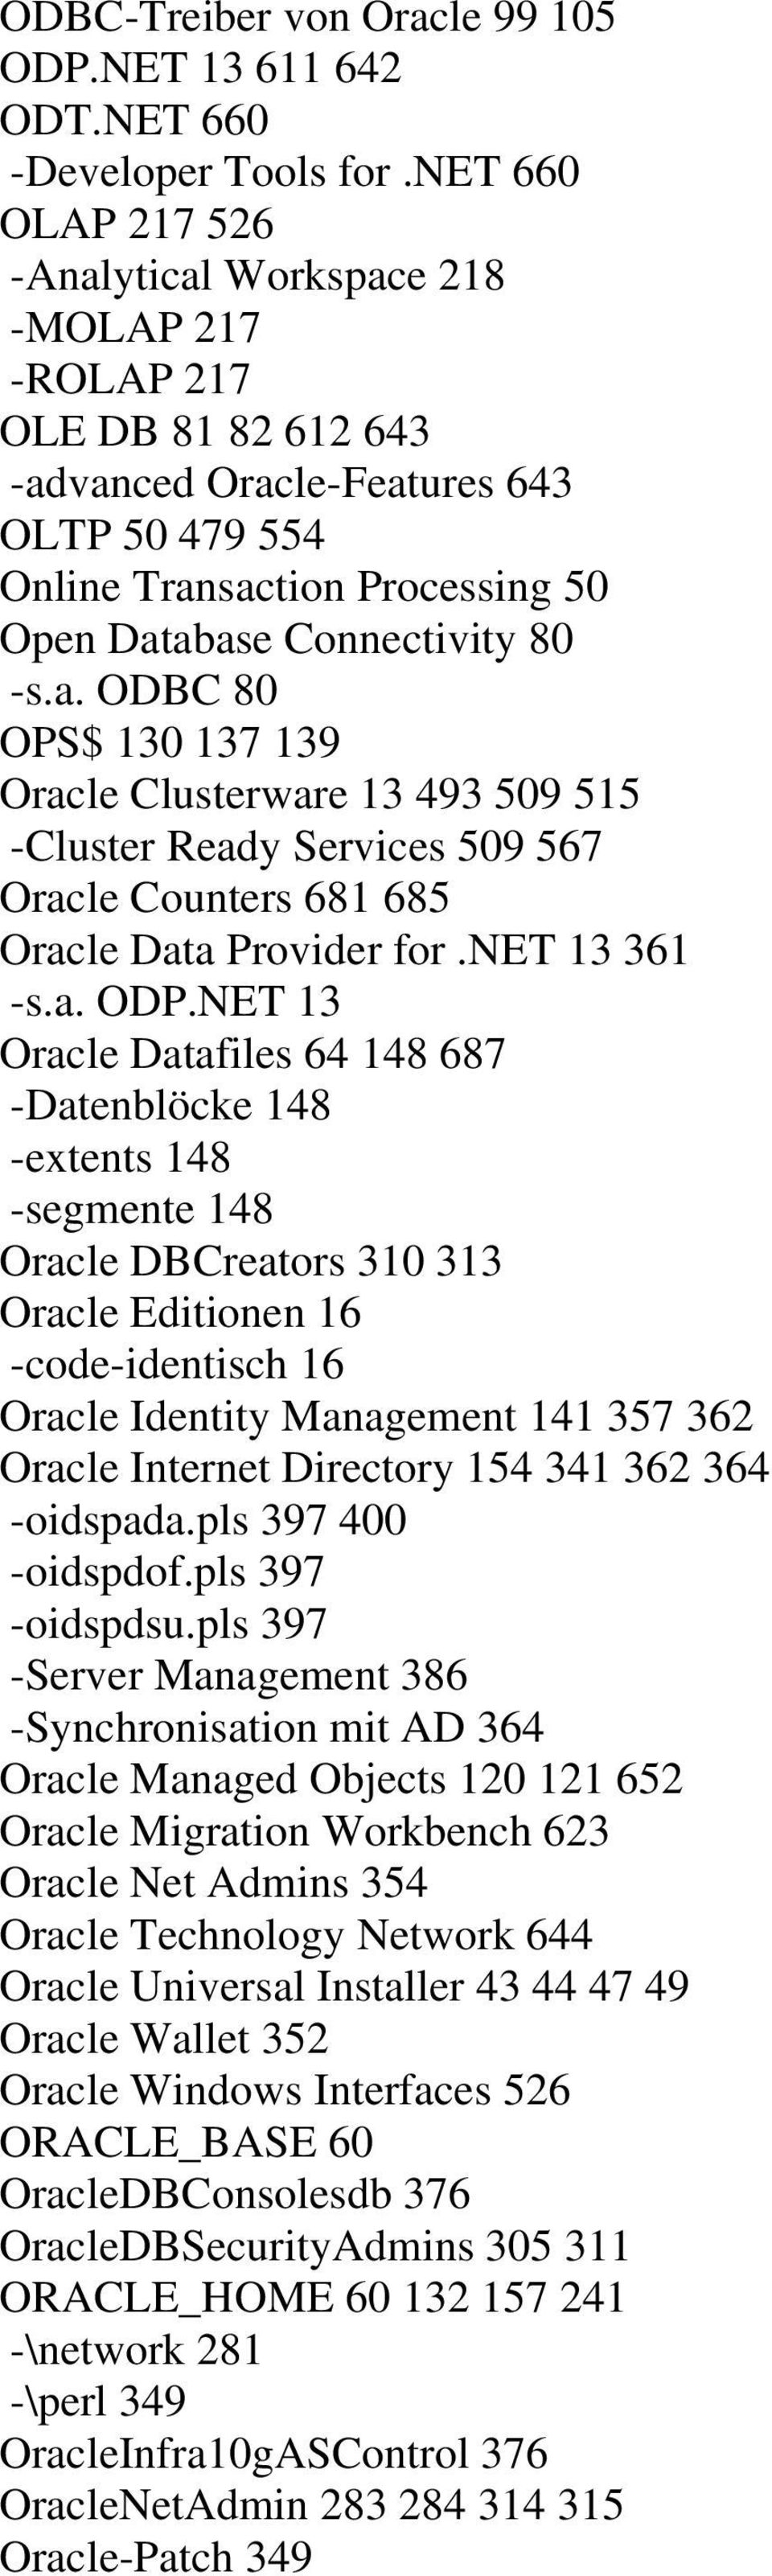 -s.a. ODBC 80 OPS$ 130 137 139 Oracle Clusterware 13 493 509 515 -Cluster Ready Services 509 567 Oracle Counters 681 685 Oracle Data Provider for.net 13 361 -s.a. ODP.